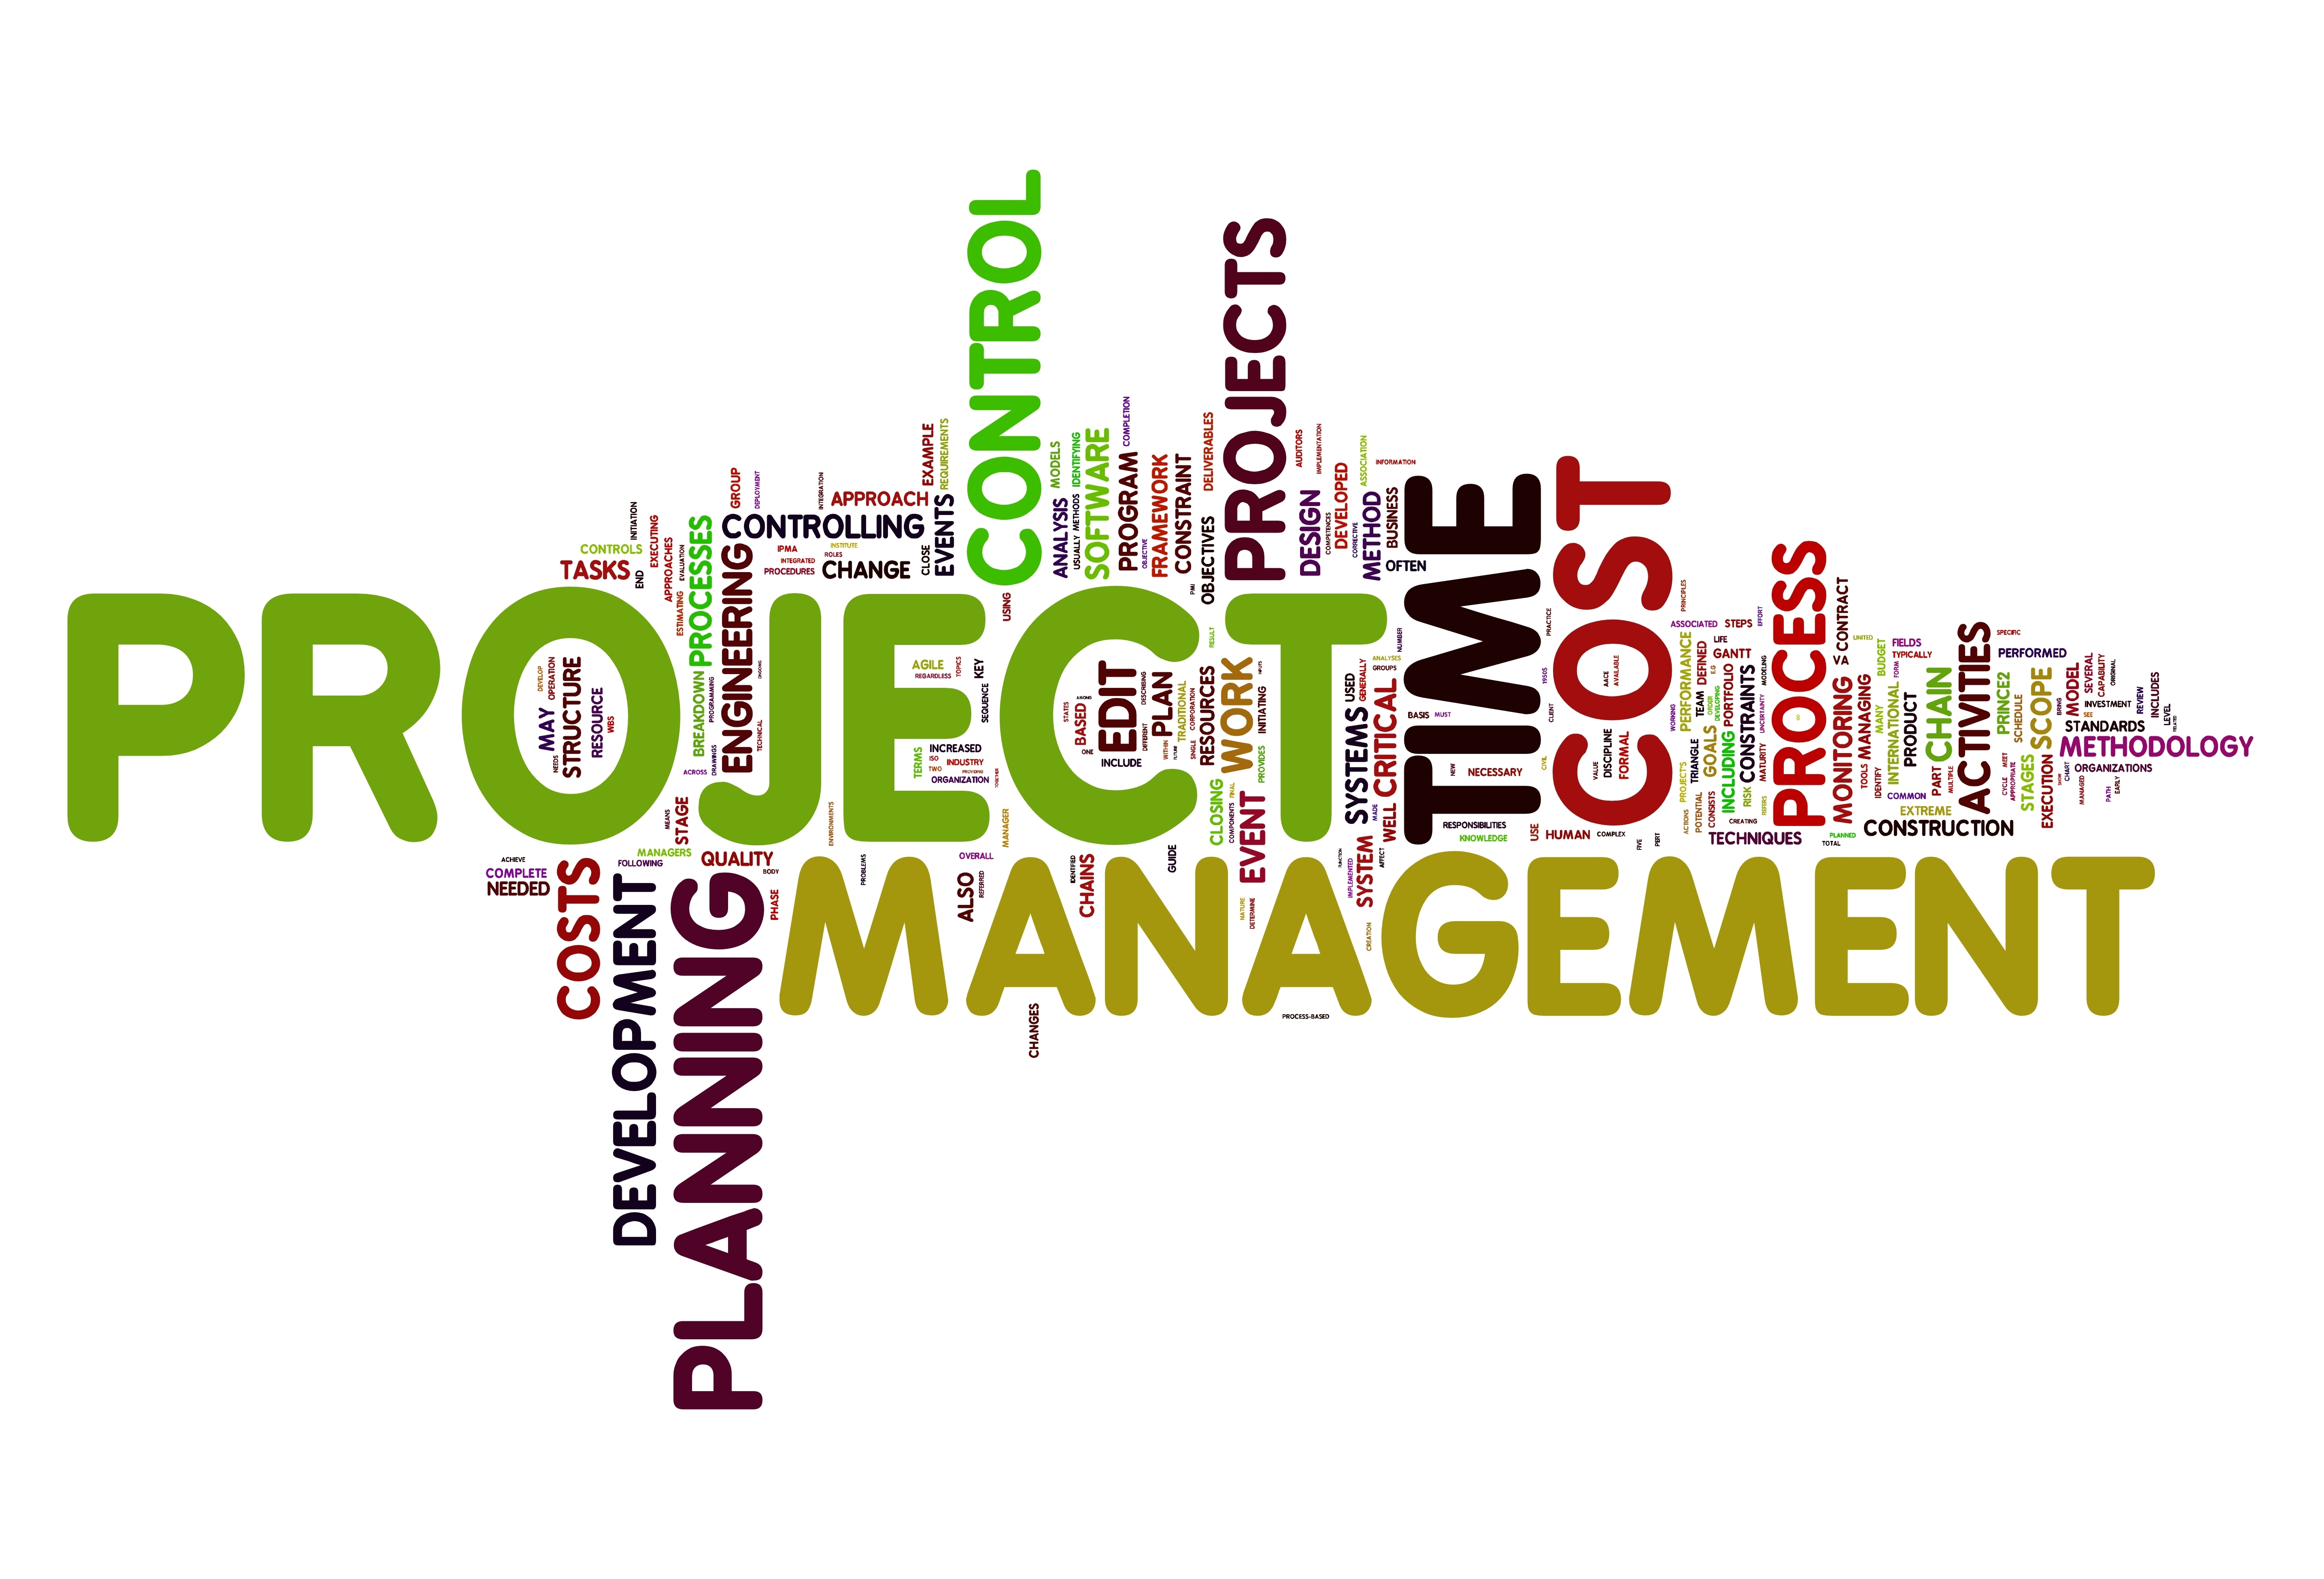 Project management shema